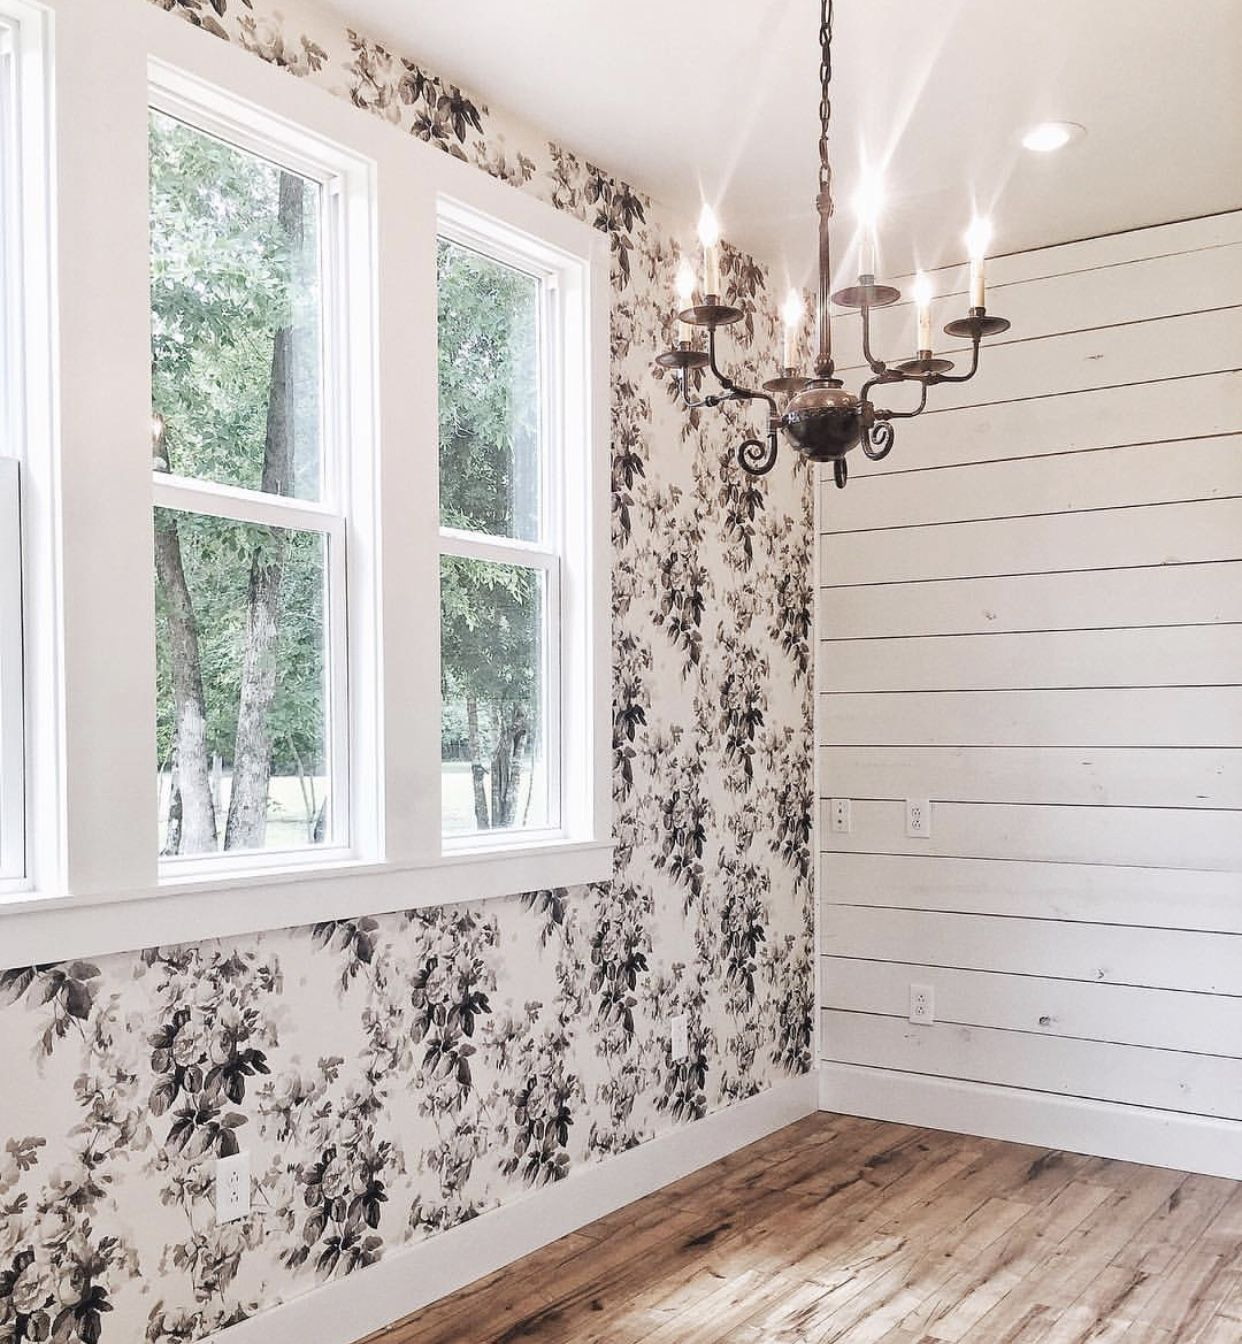 Wallpaper, shiplap, white windows, chandelier? Dining